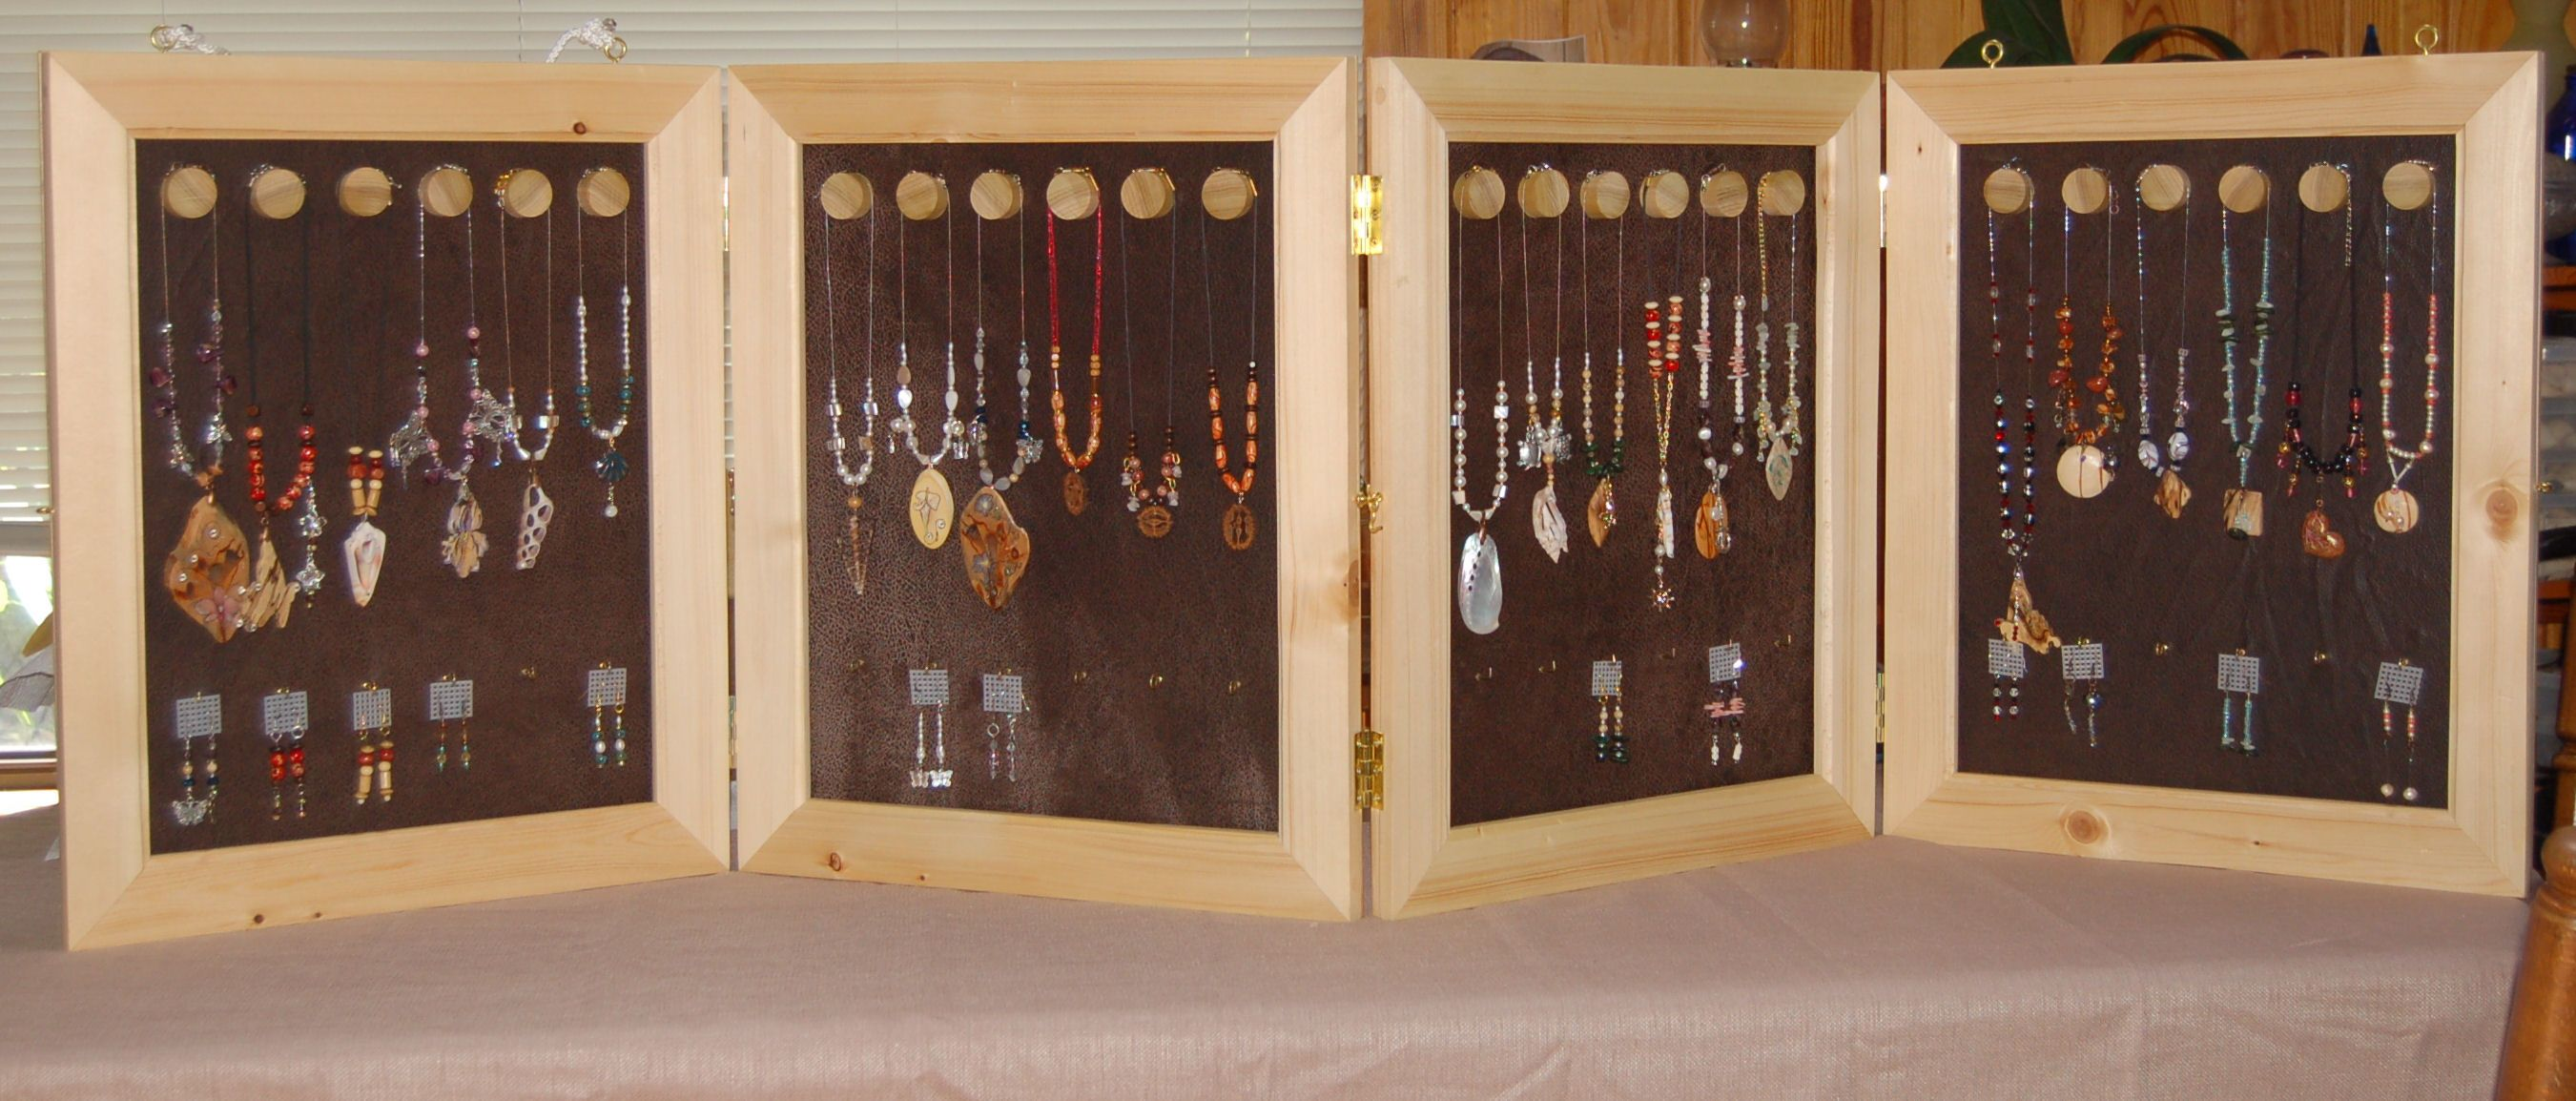 handcrafted jewelry display case portable and light. Black Bedroom Furniture Sets. Home Design Ideas